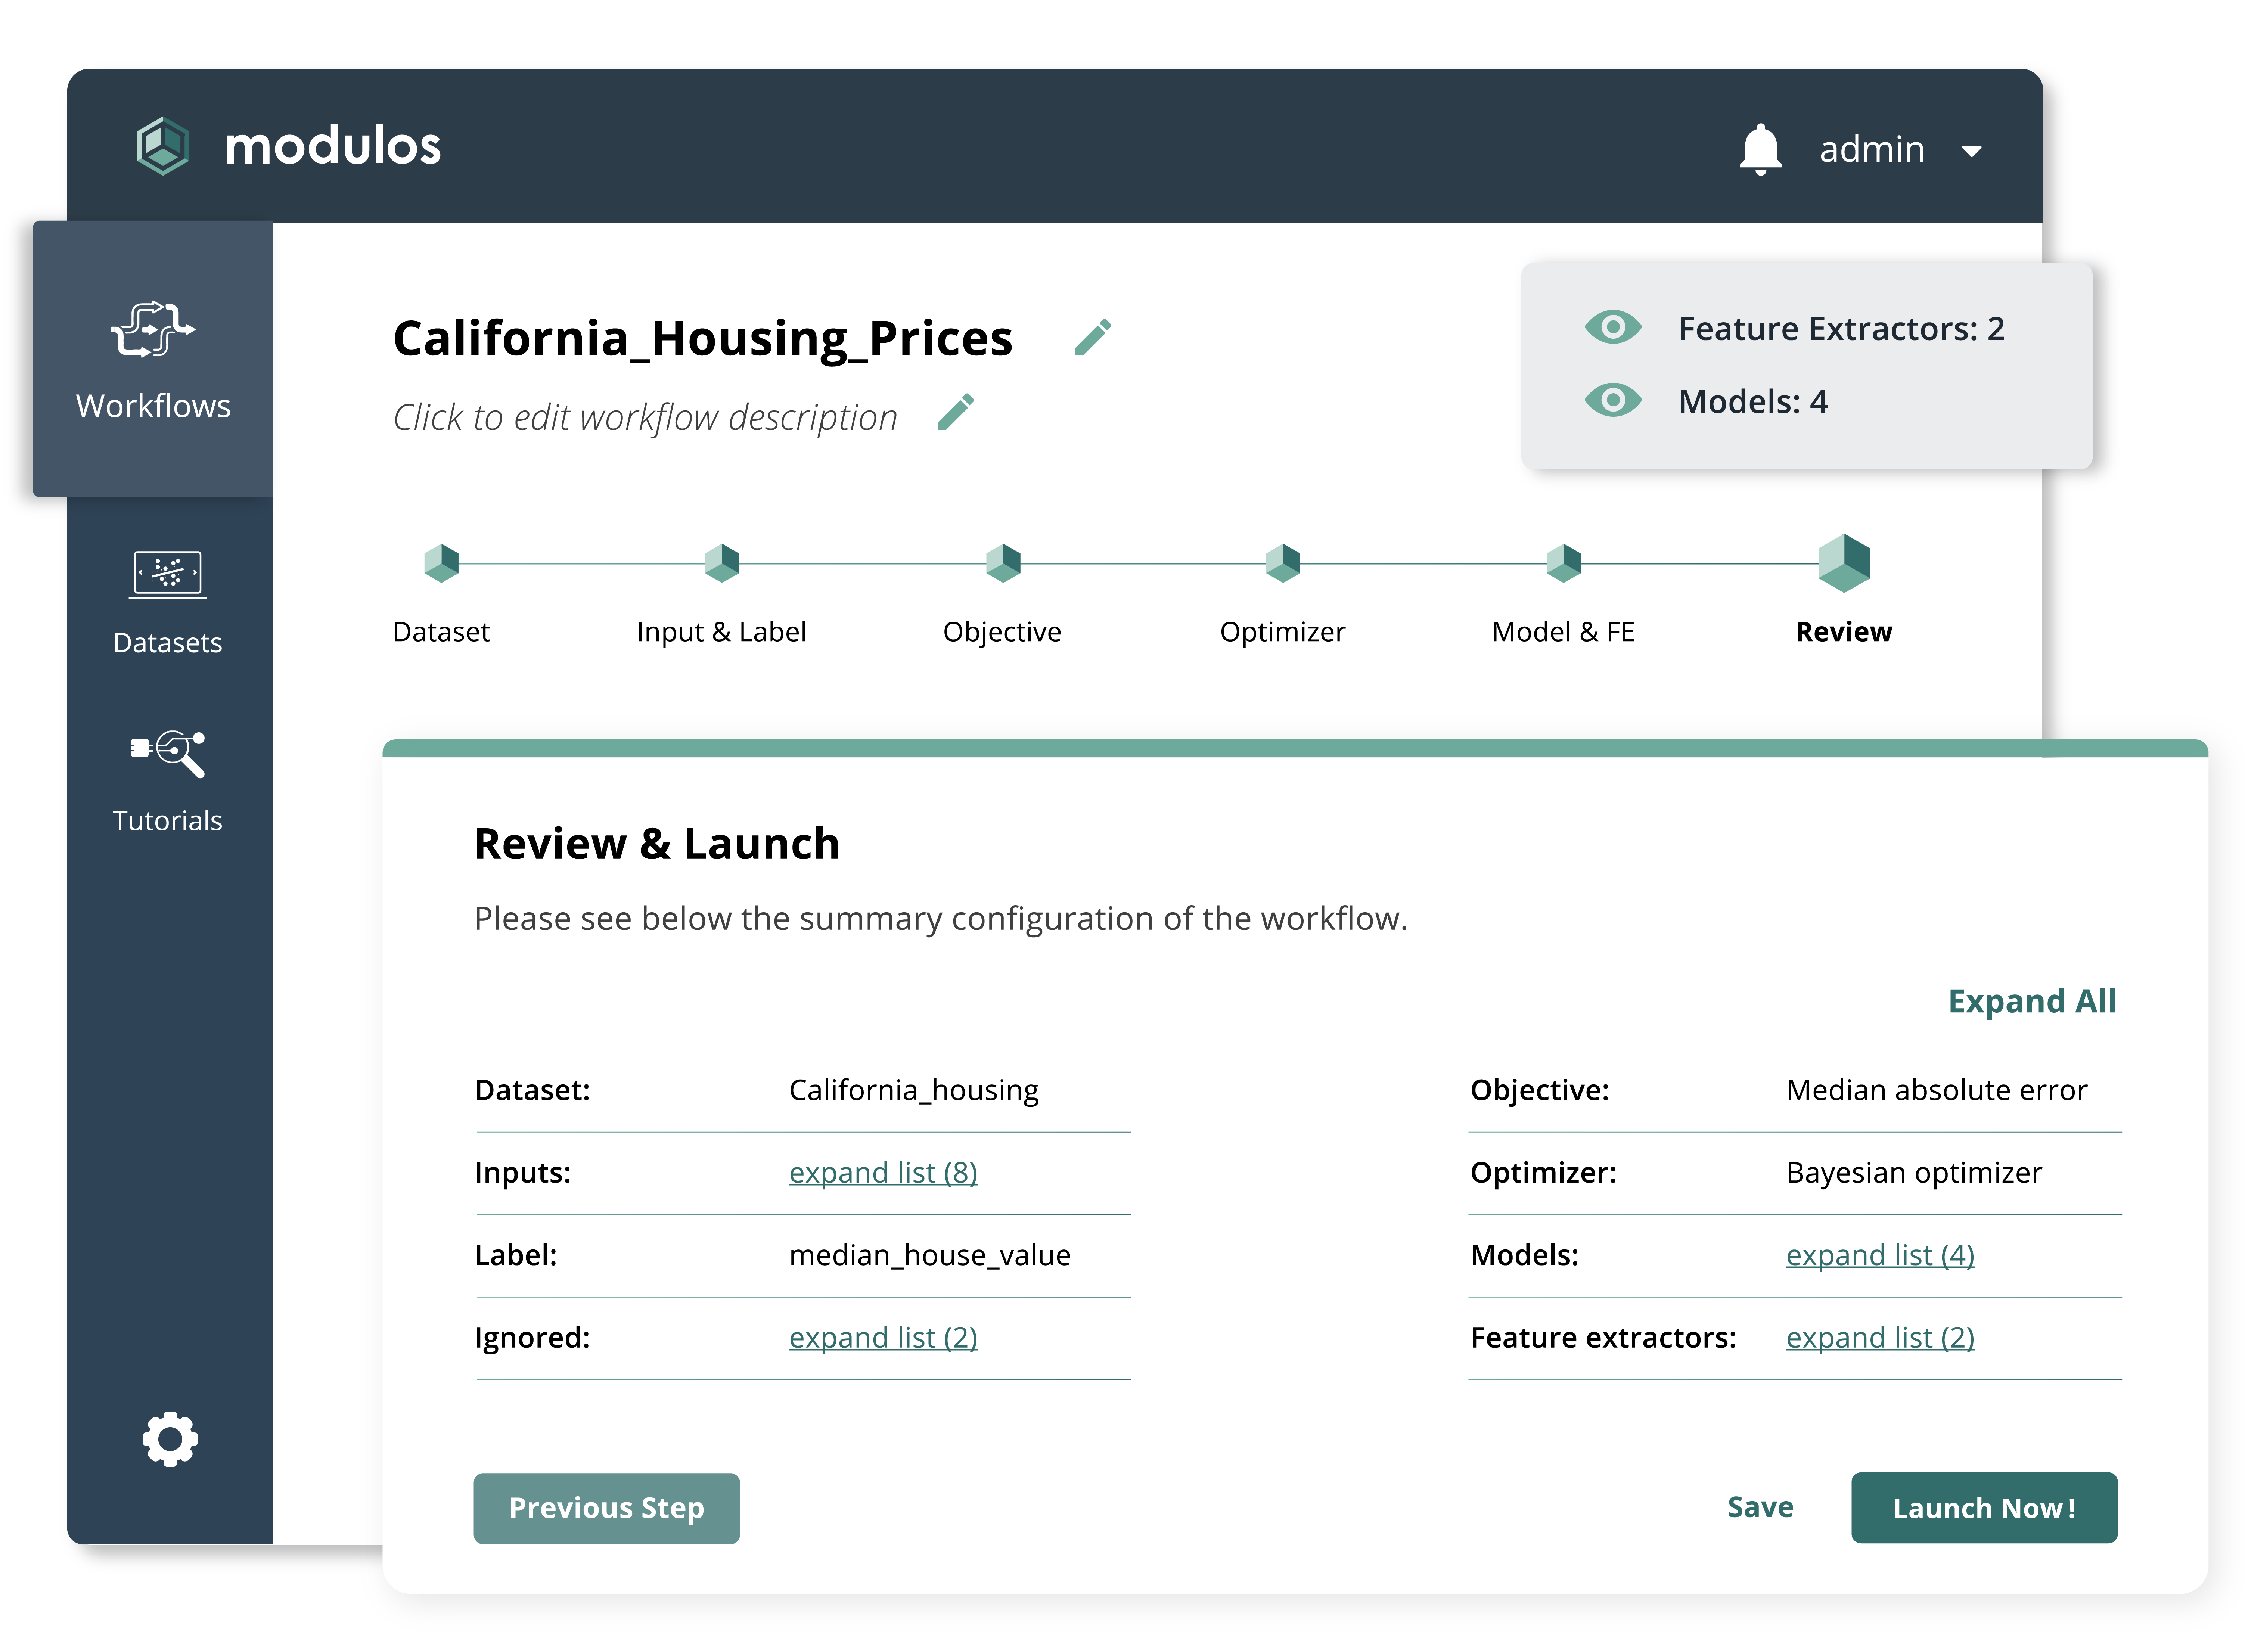 Modulos AutoML product overview - California Housing Prices